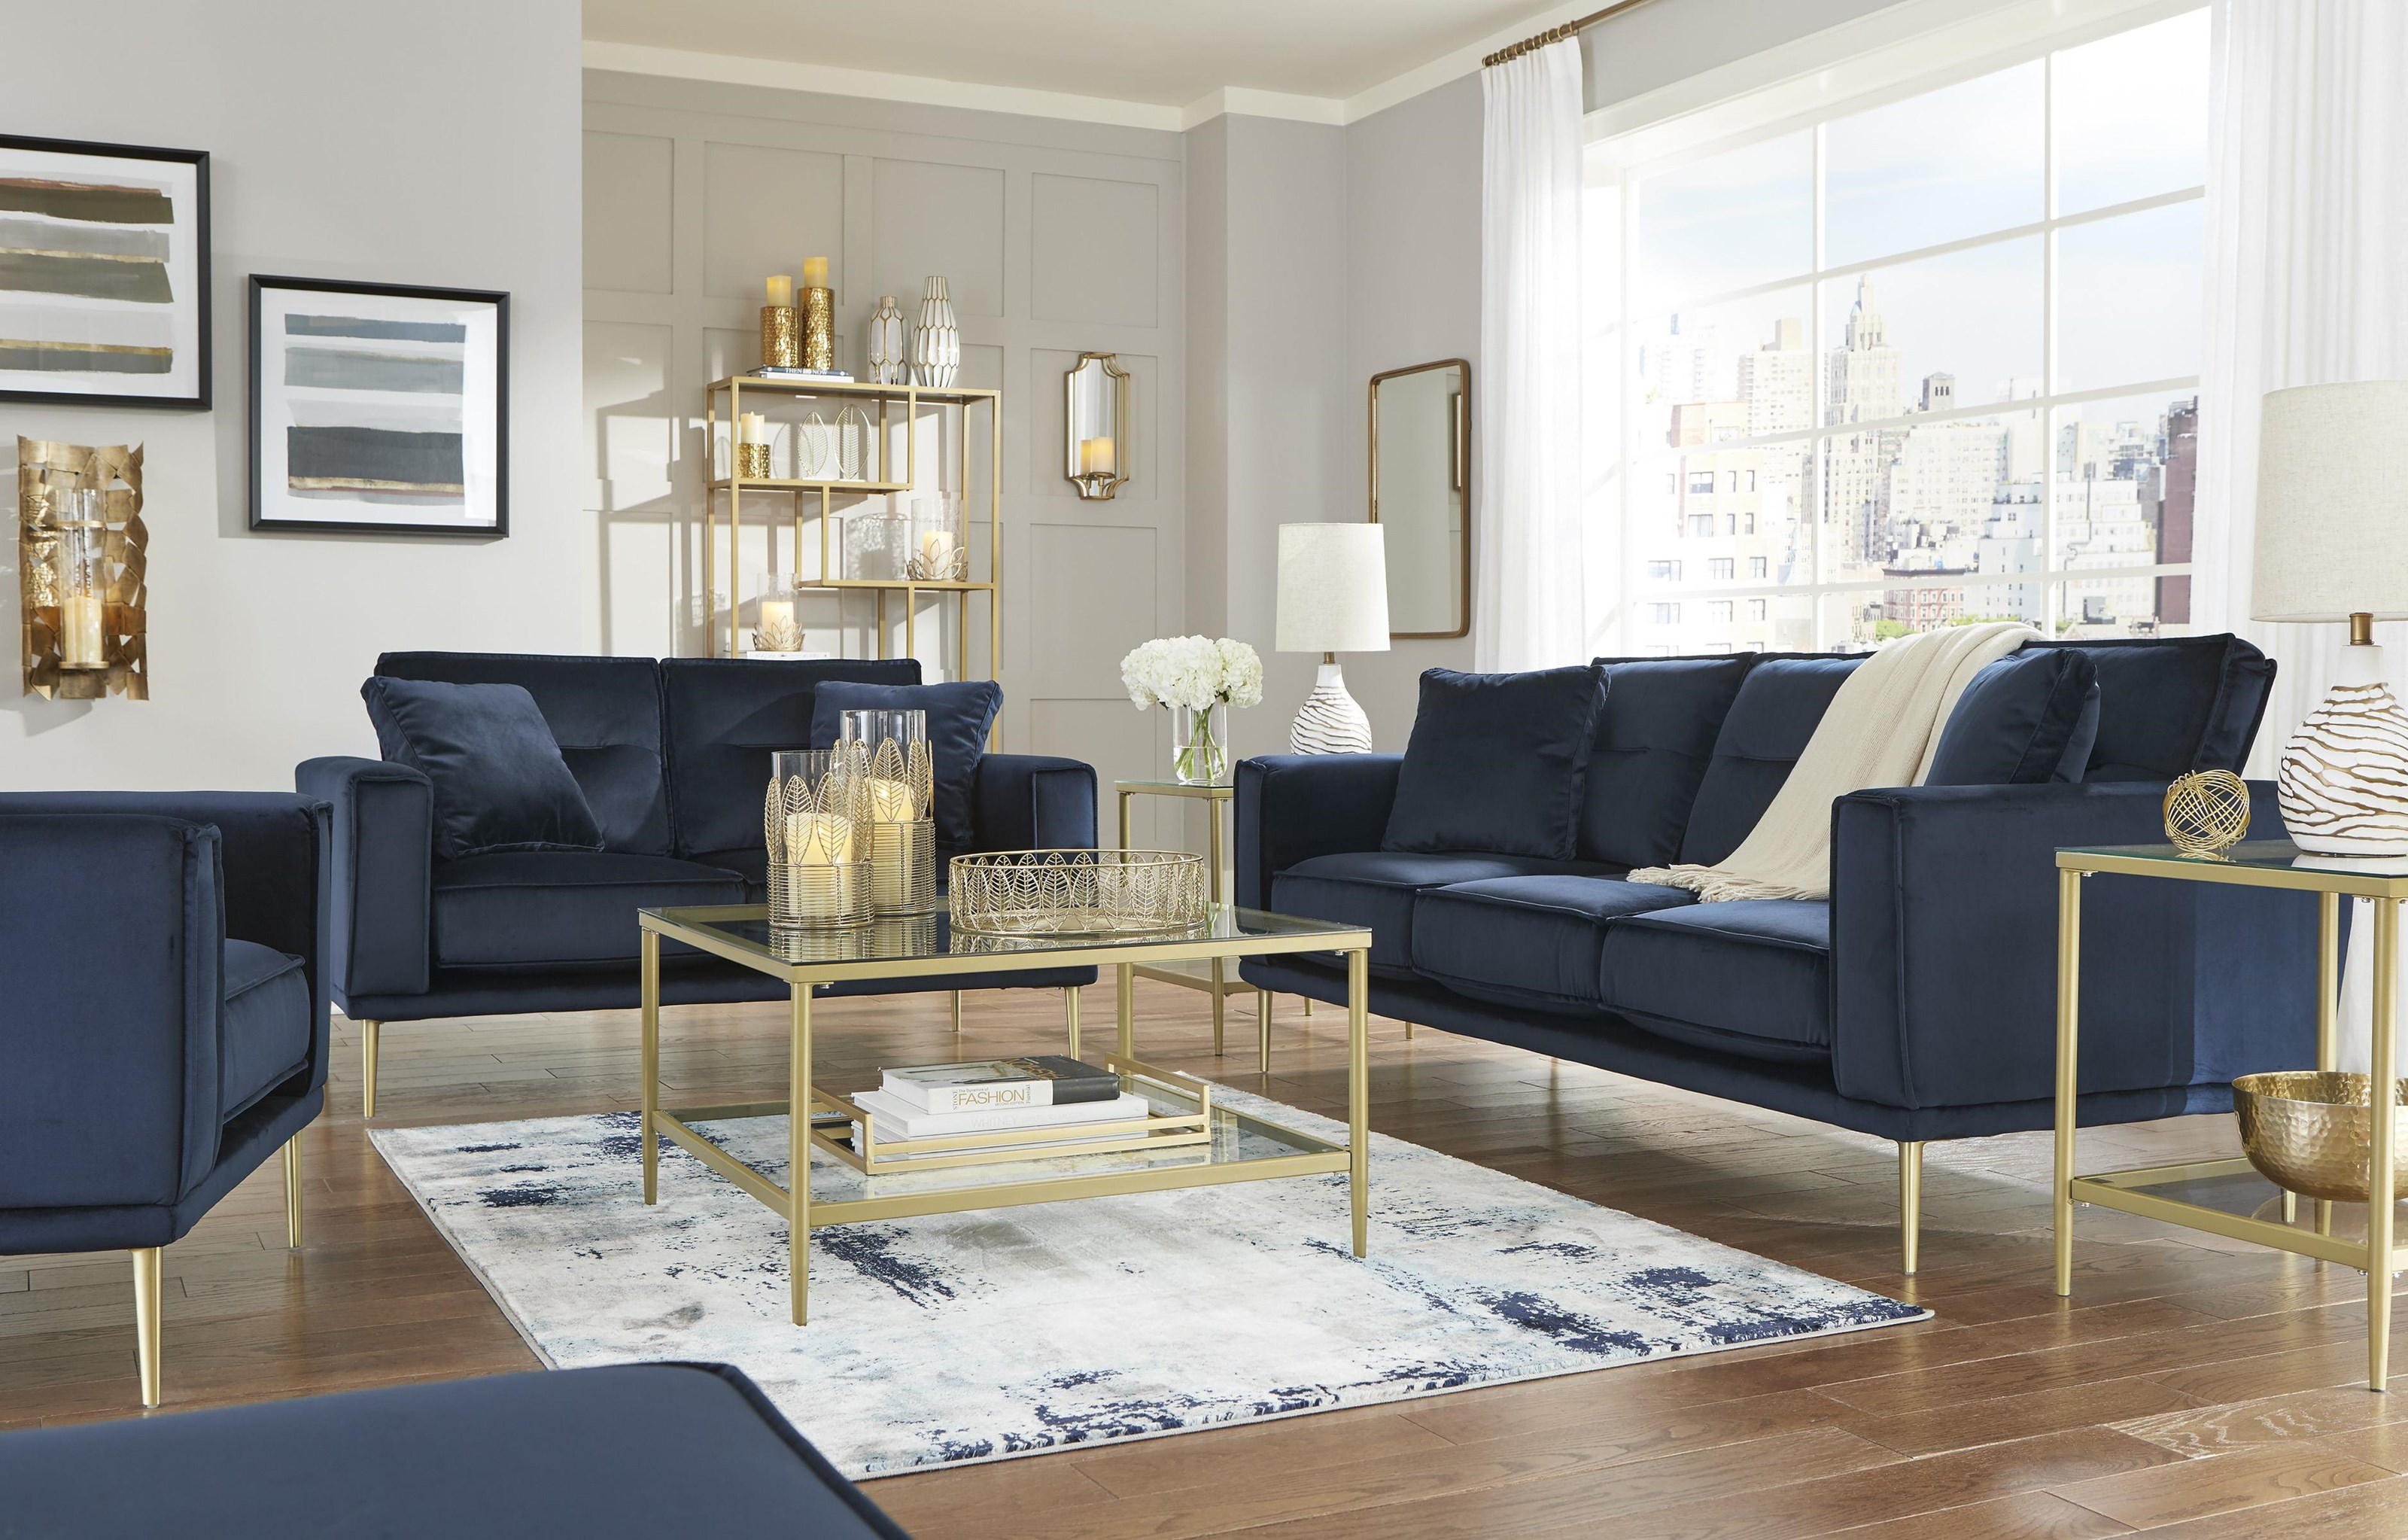 Macleary Sofa, Chair and Ottoman Set by Signature Design by Ashley at Sam Levitz Outlet